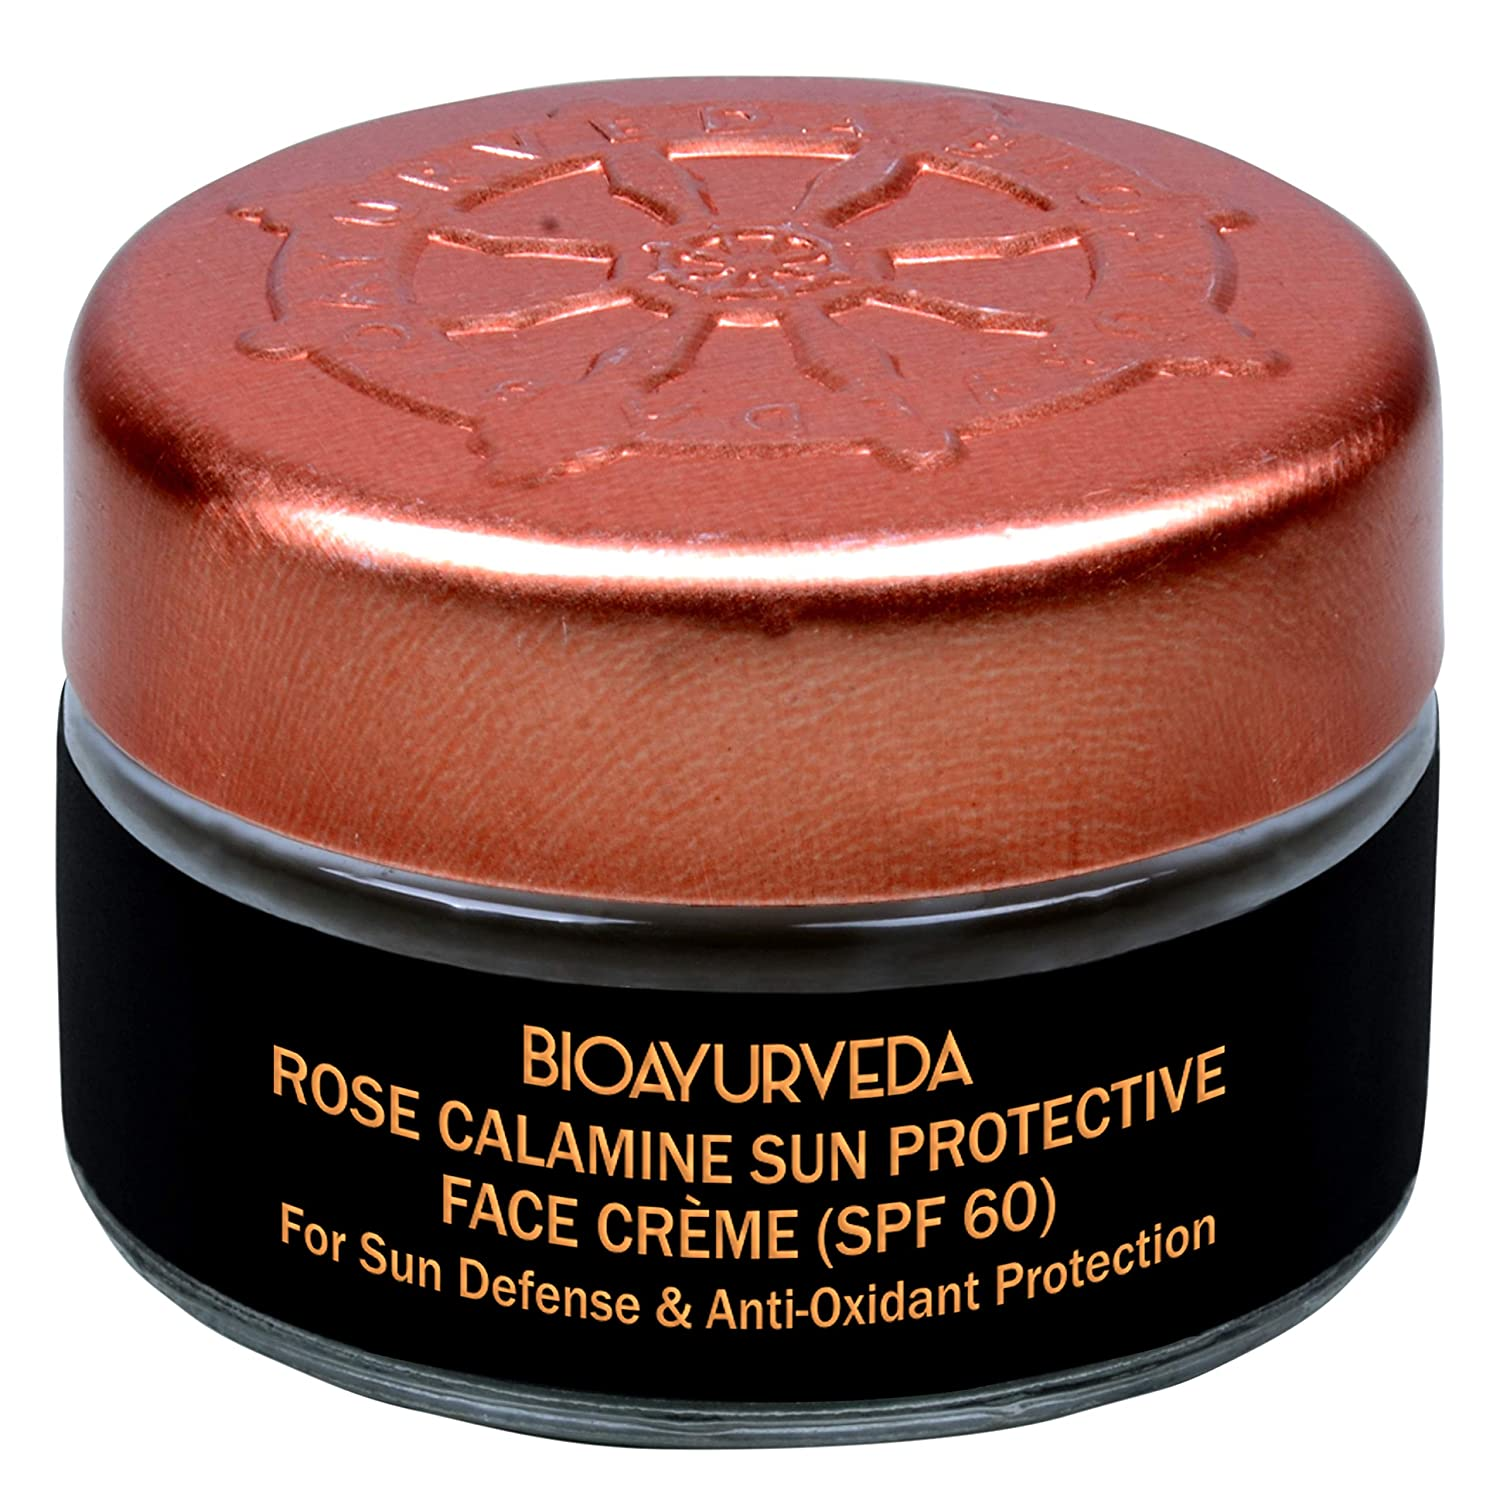 BIOAYURVEDA Rose Calamine Sun Protective Face Cream with SPF 60 and Broad Spectrum (UVA/UVB) Protection, Skincare With Organic Ingredients, Facial Sunscreen for Sensitive Skin, Fine Lines| (0.7 Oz)